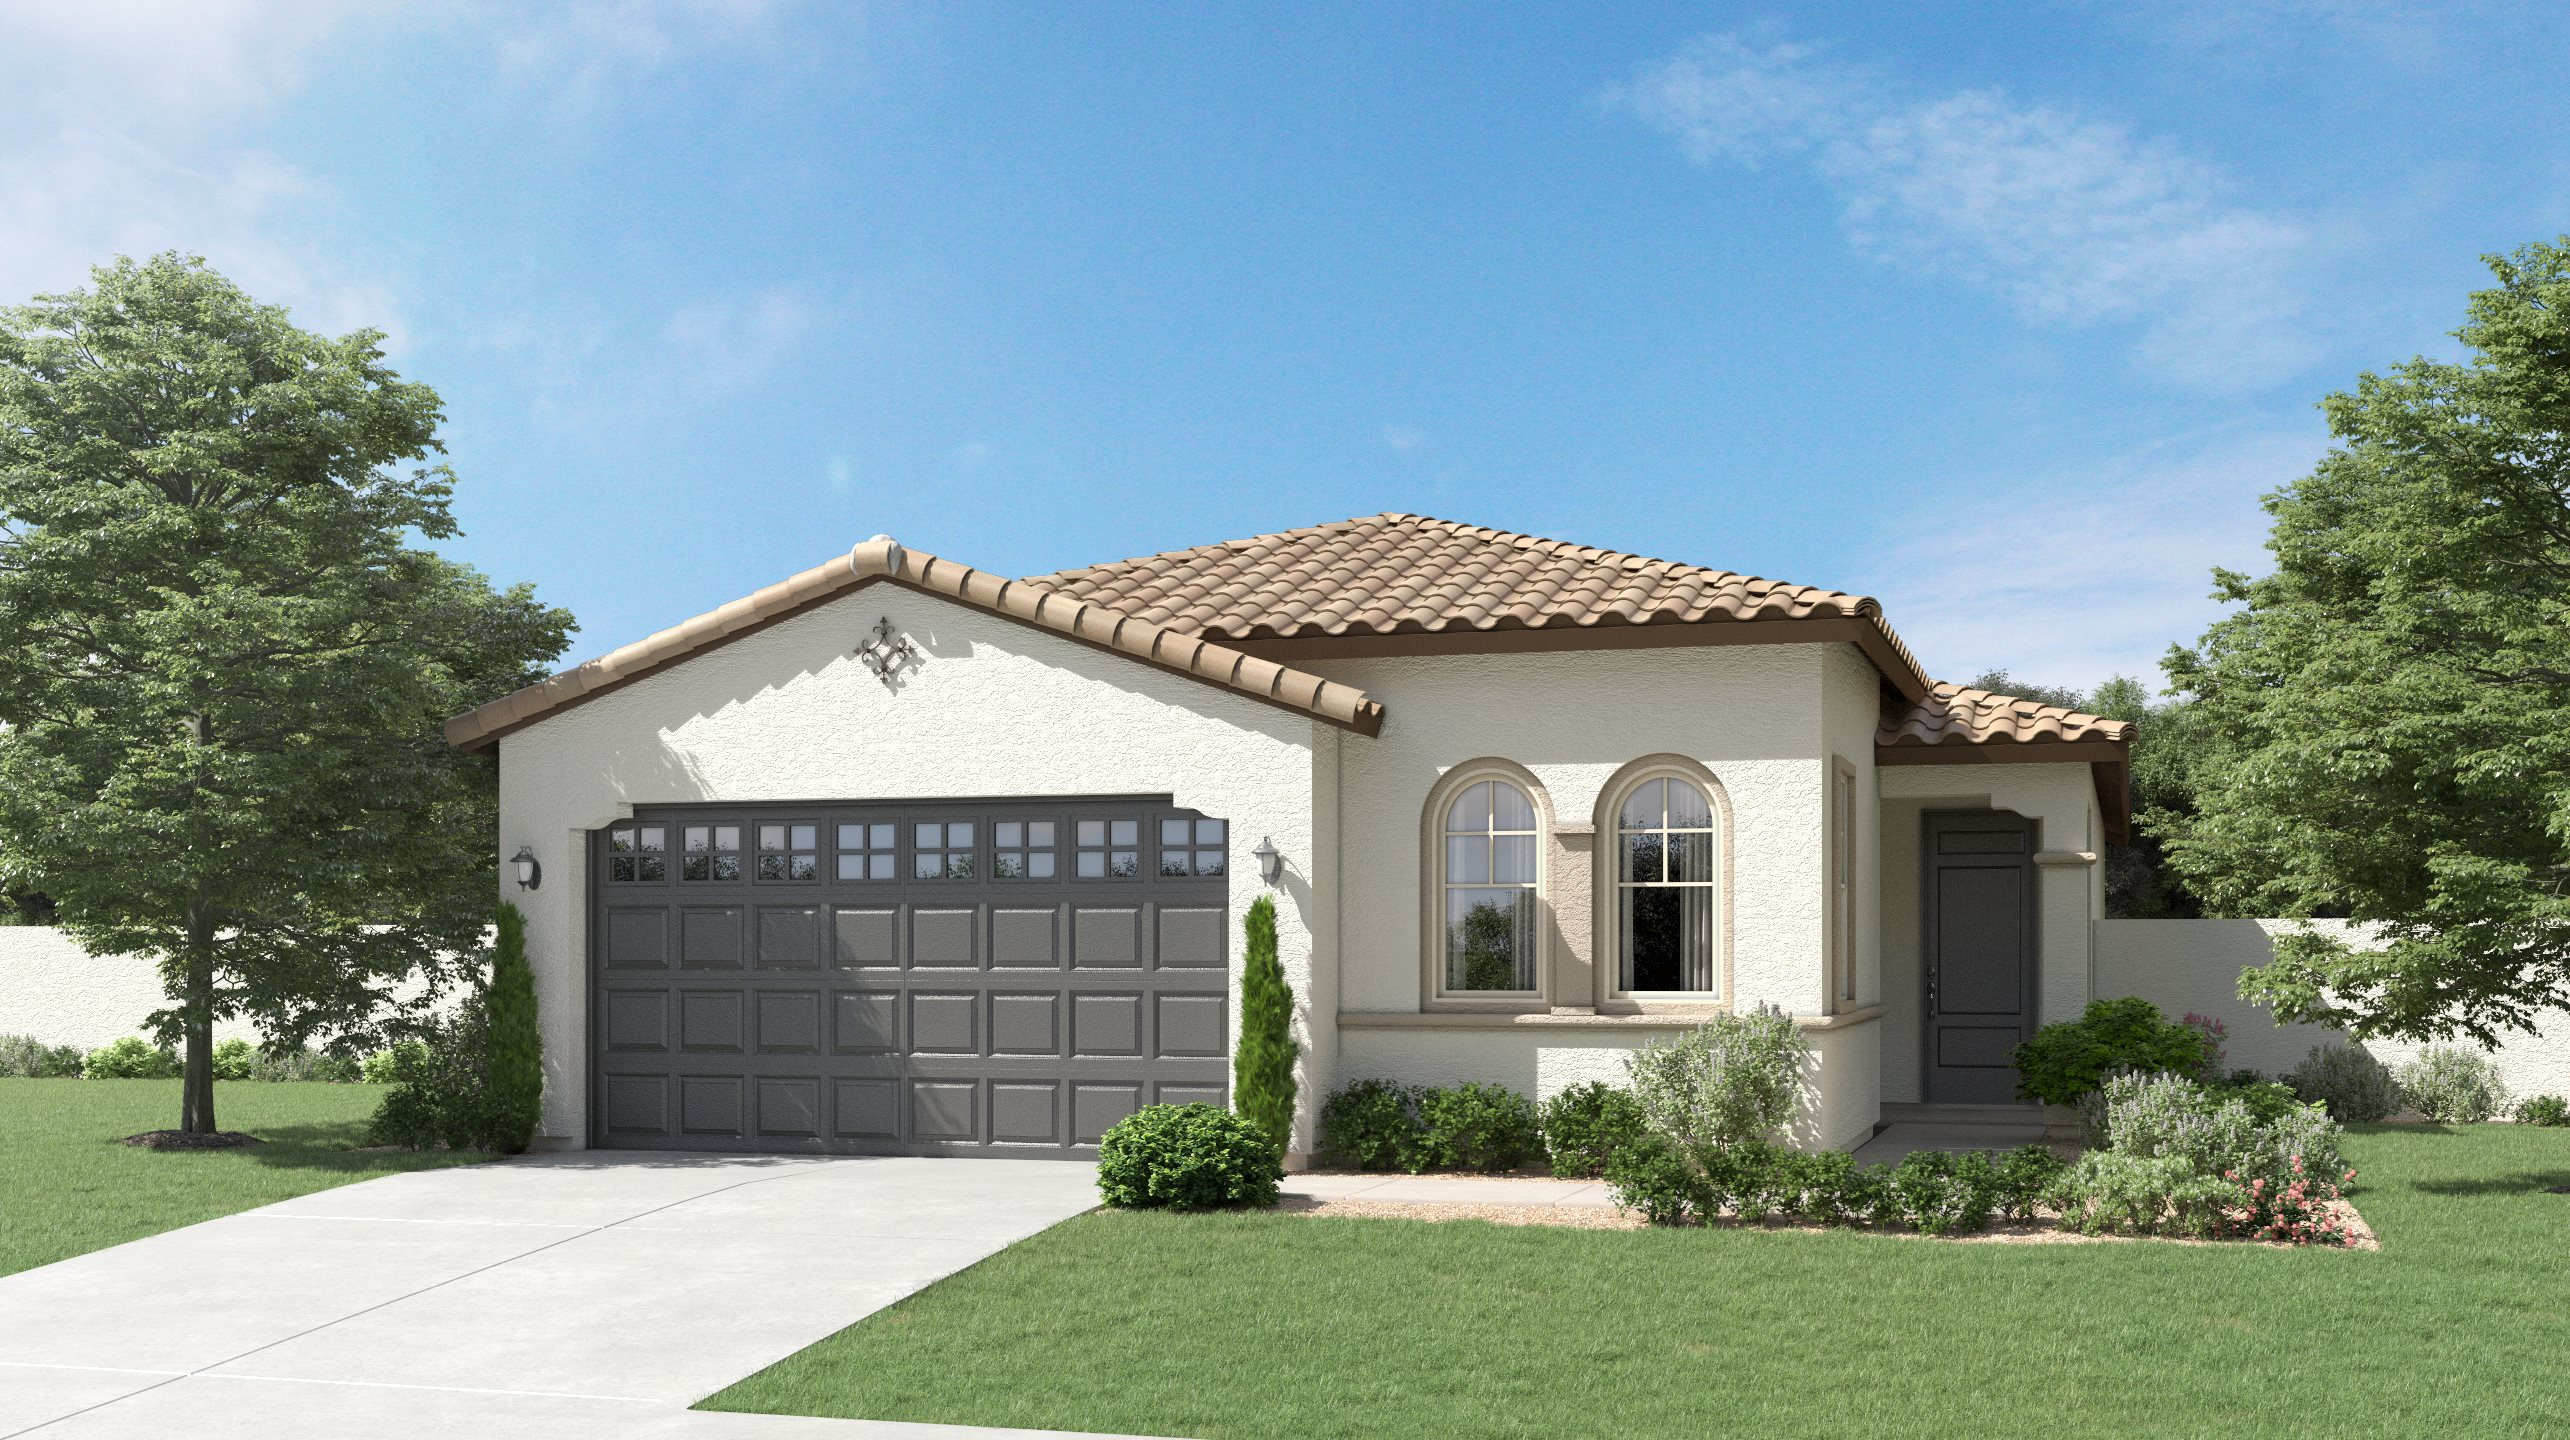 Spanish Colonial Exterior for Plan 3570